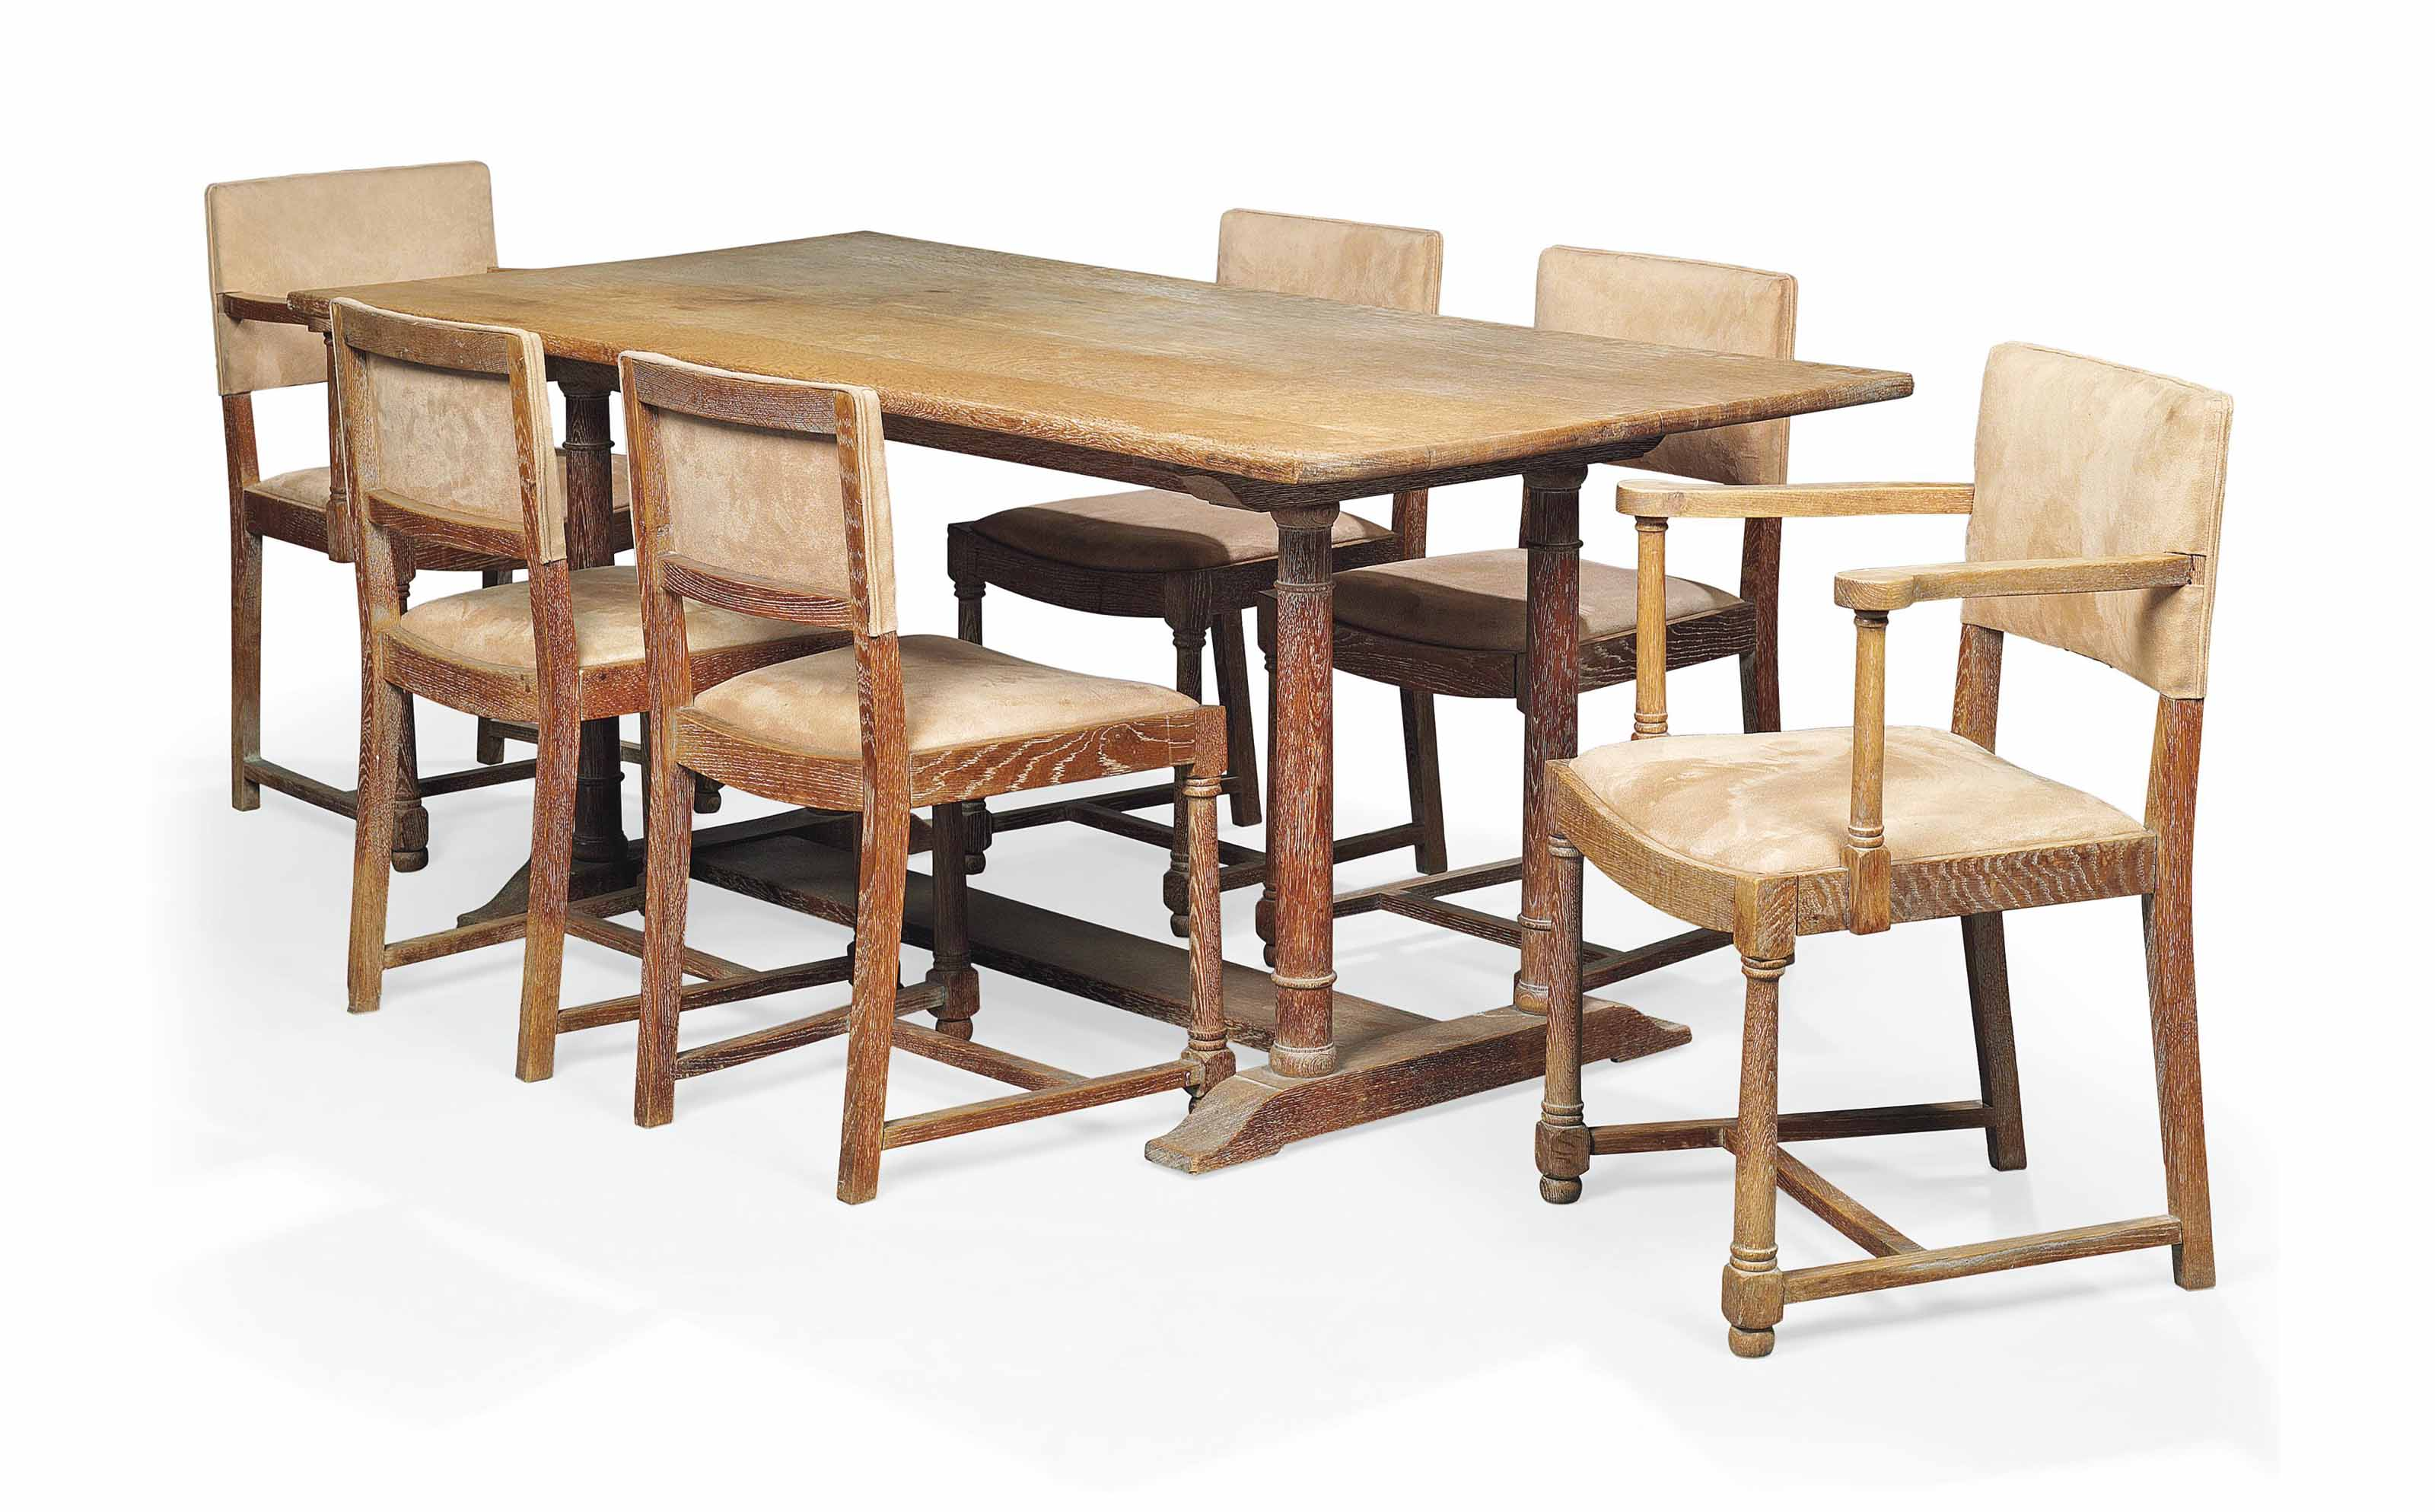 Dining Room Chairs Heals a heal's limed oak dining table and chairs | circa 1930s | christie's